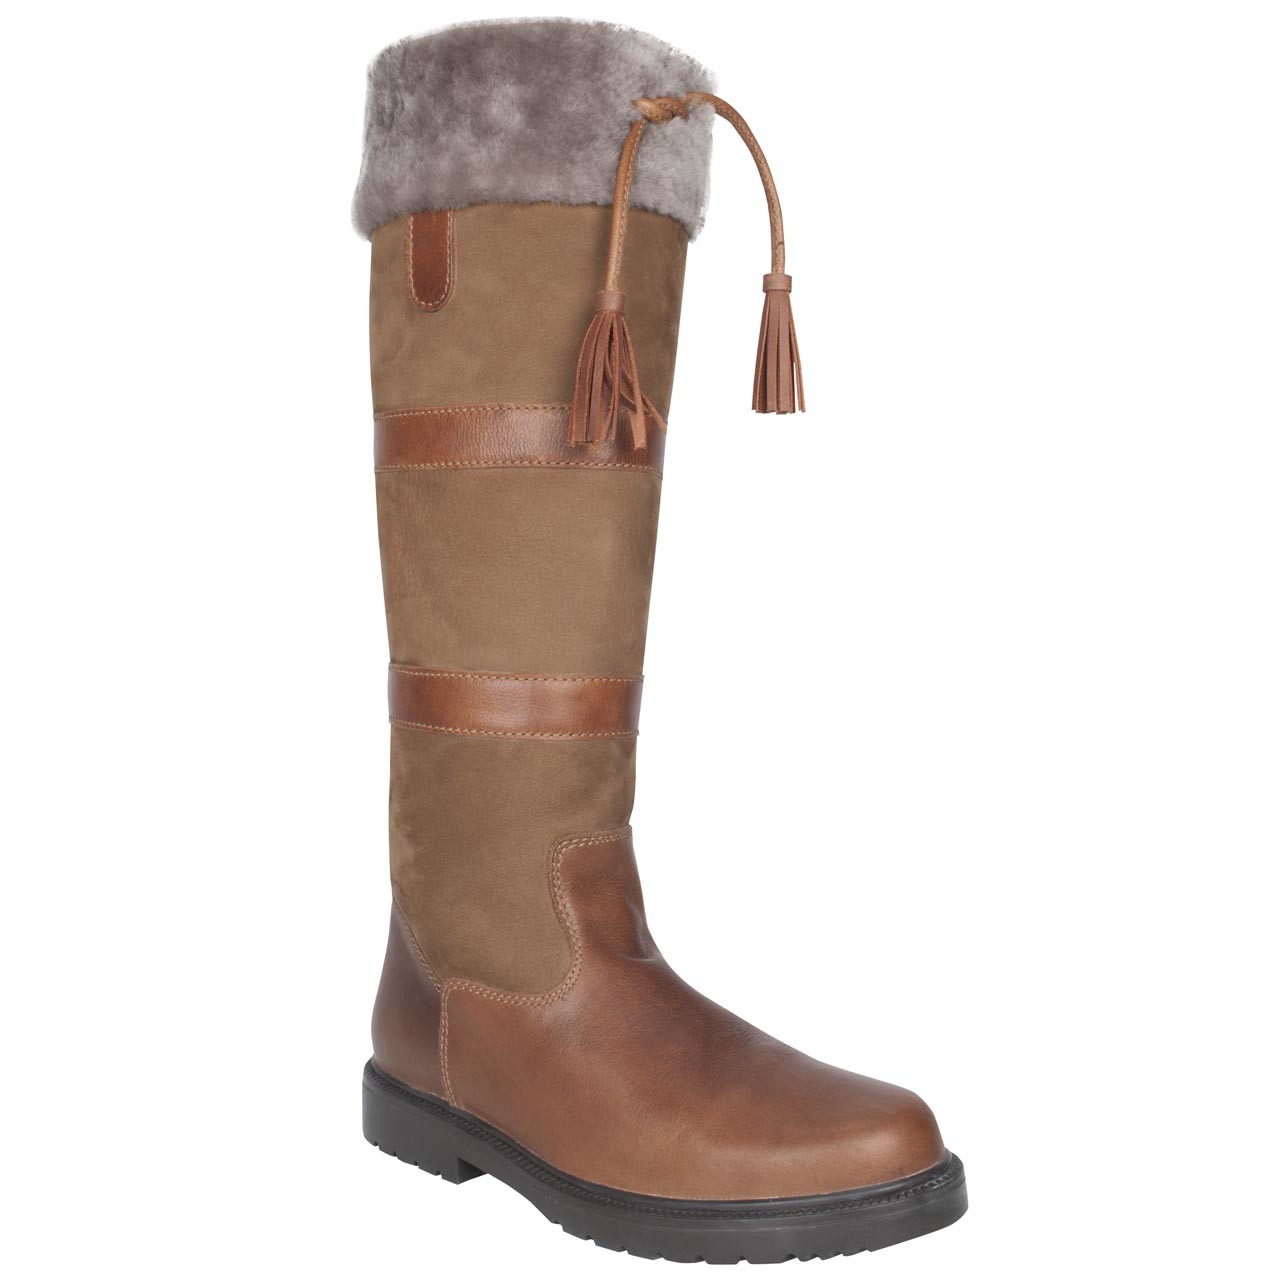 Mondoni Norway Stiefel